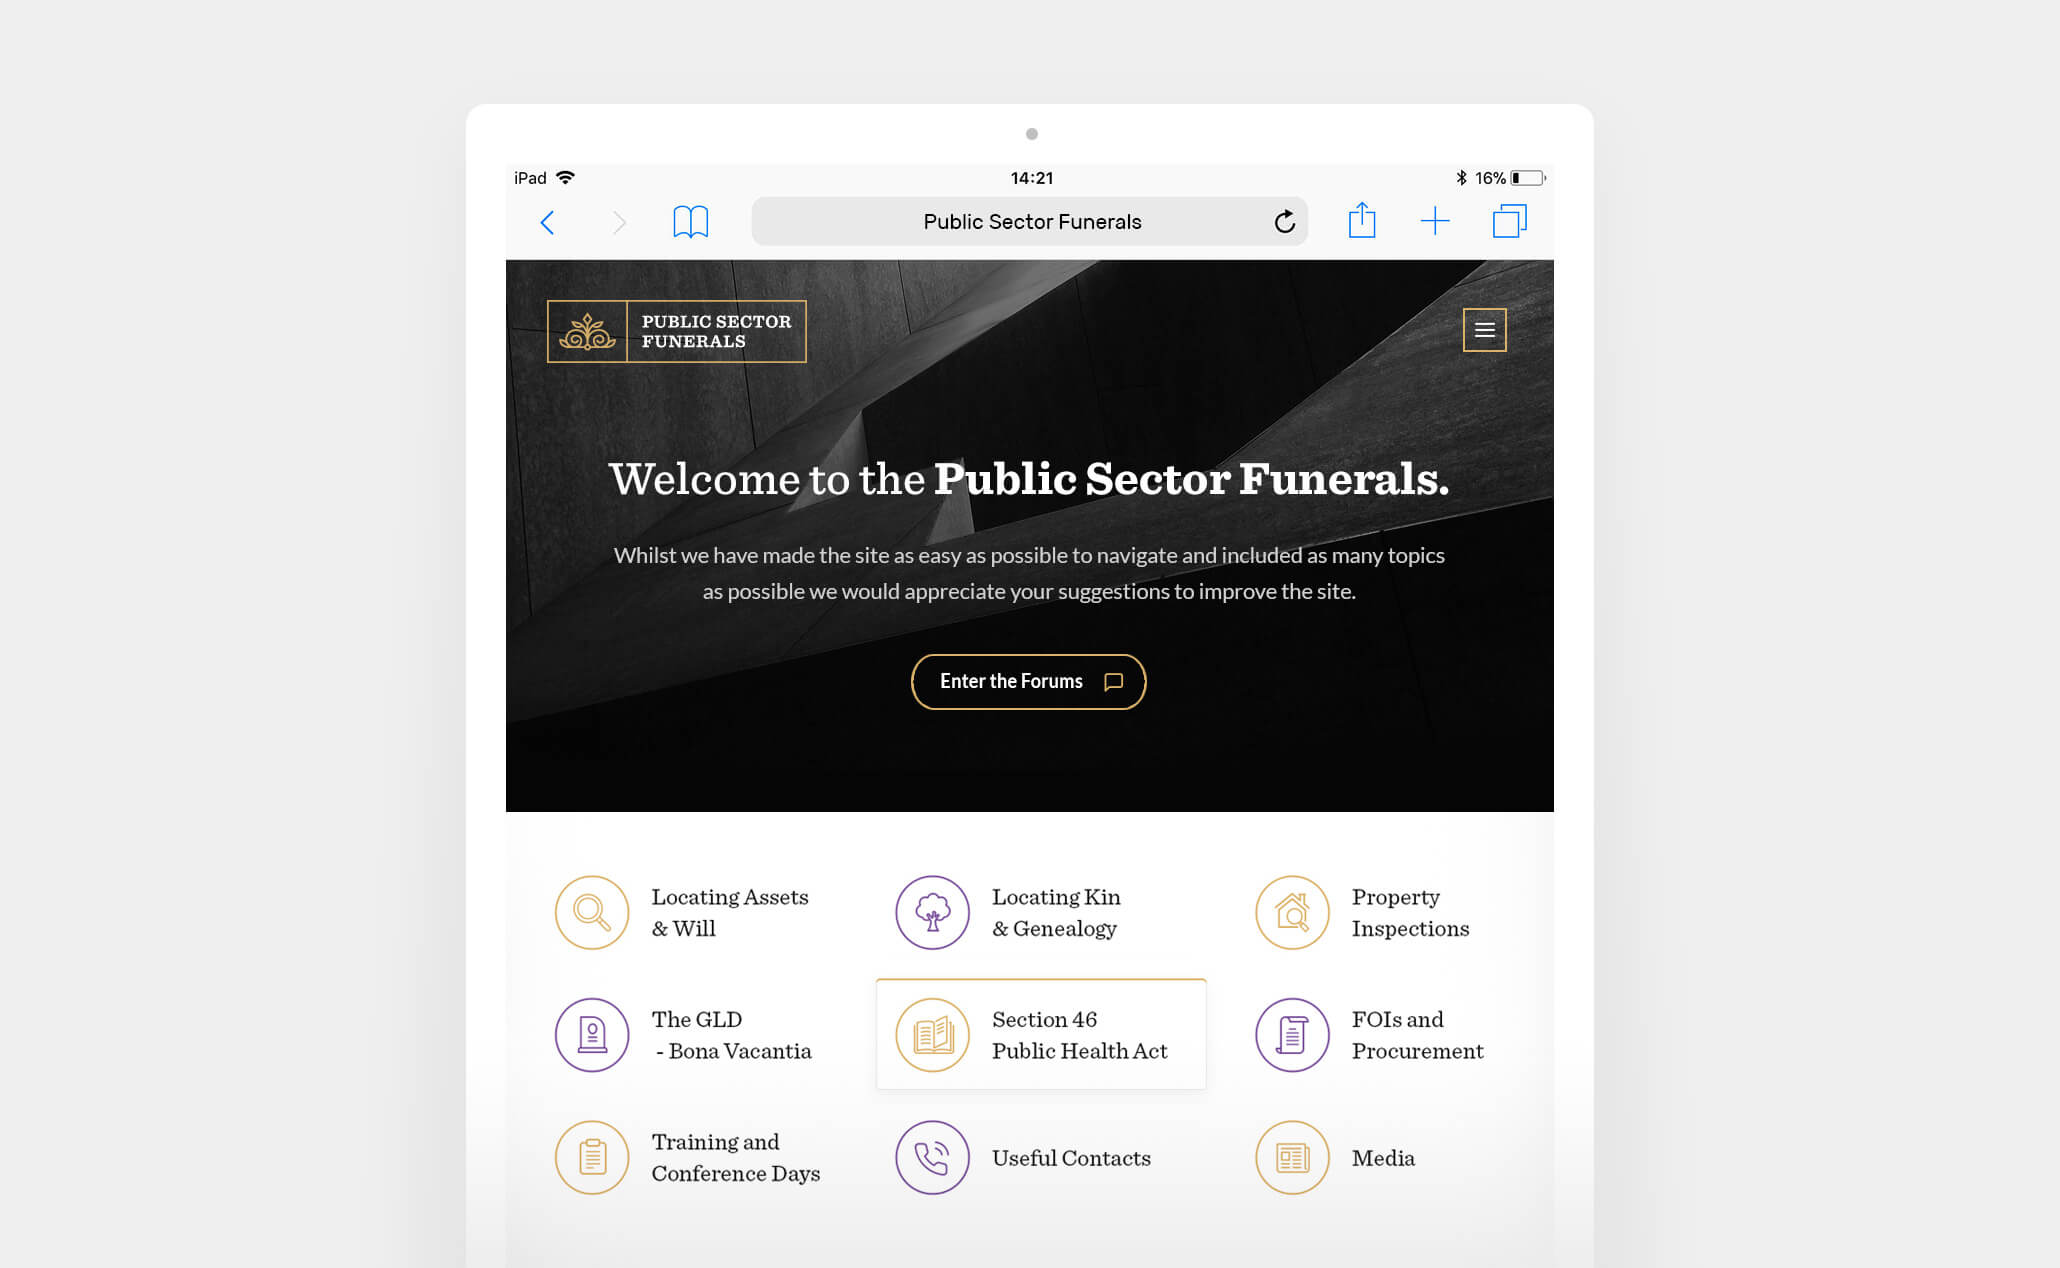 Public Sector Funerals website